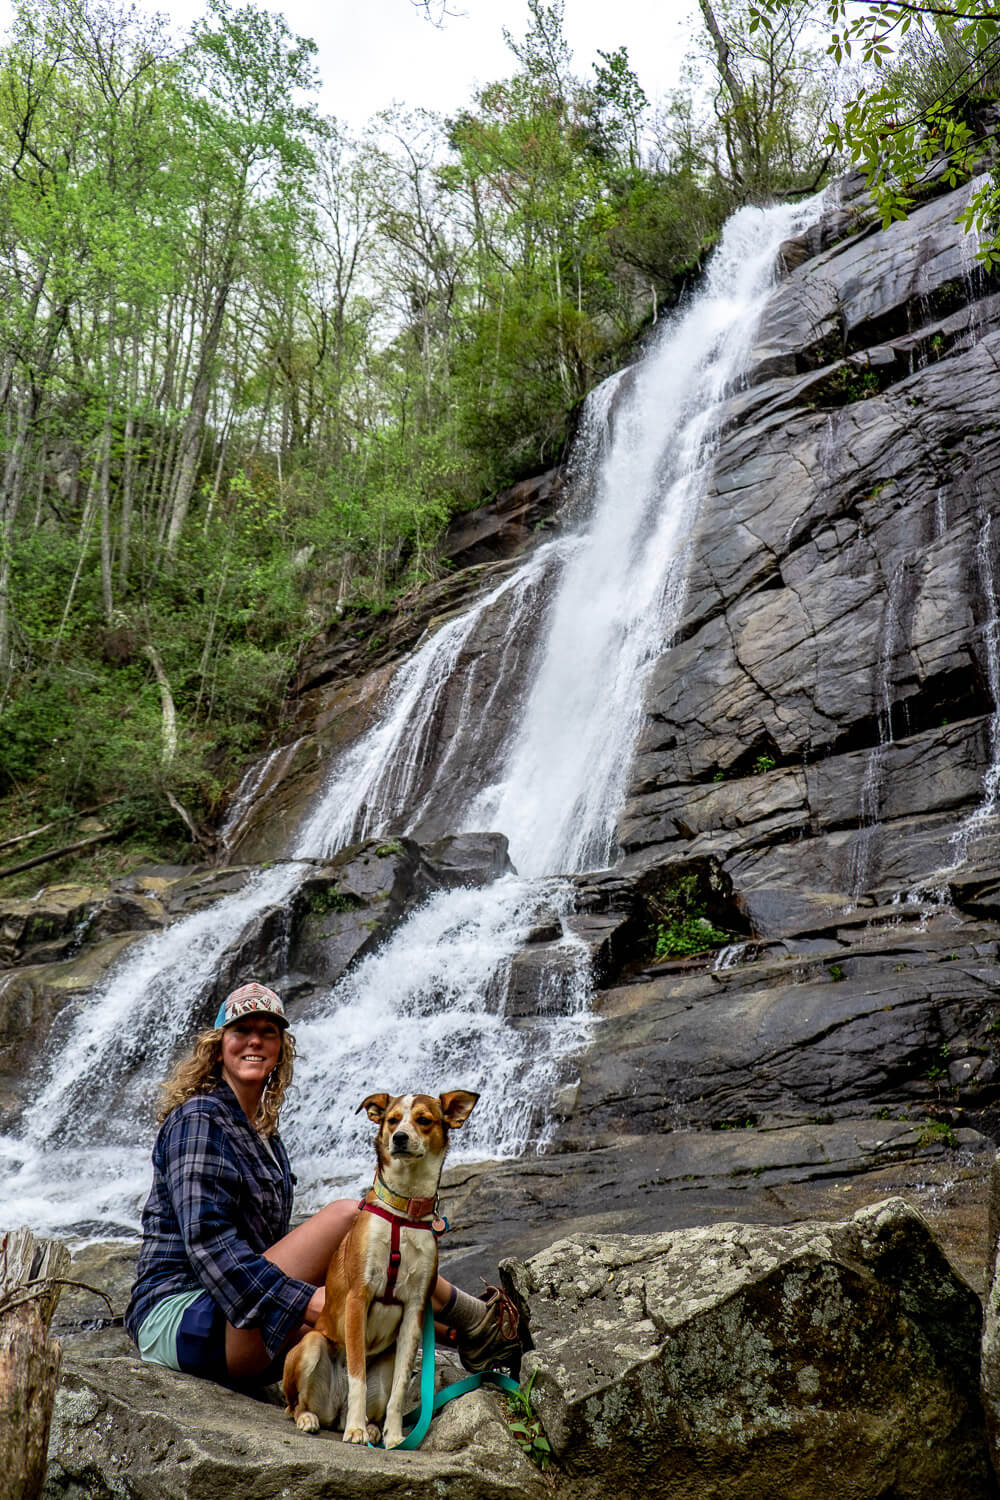 woman and dog in front of upper tier of falls creek falls